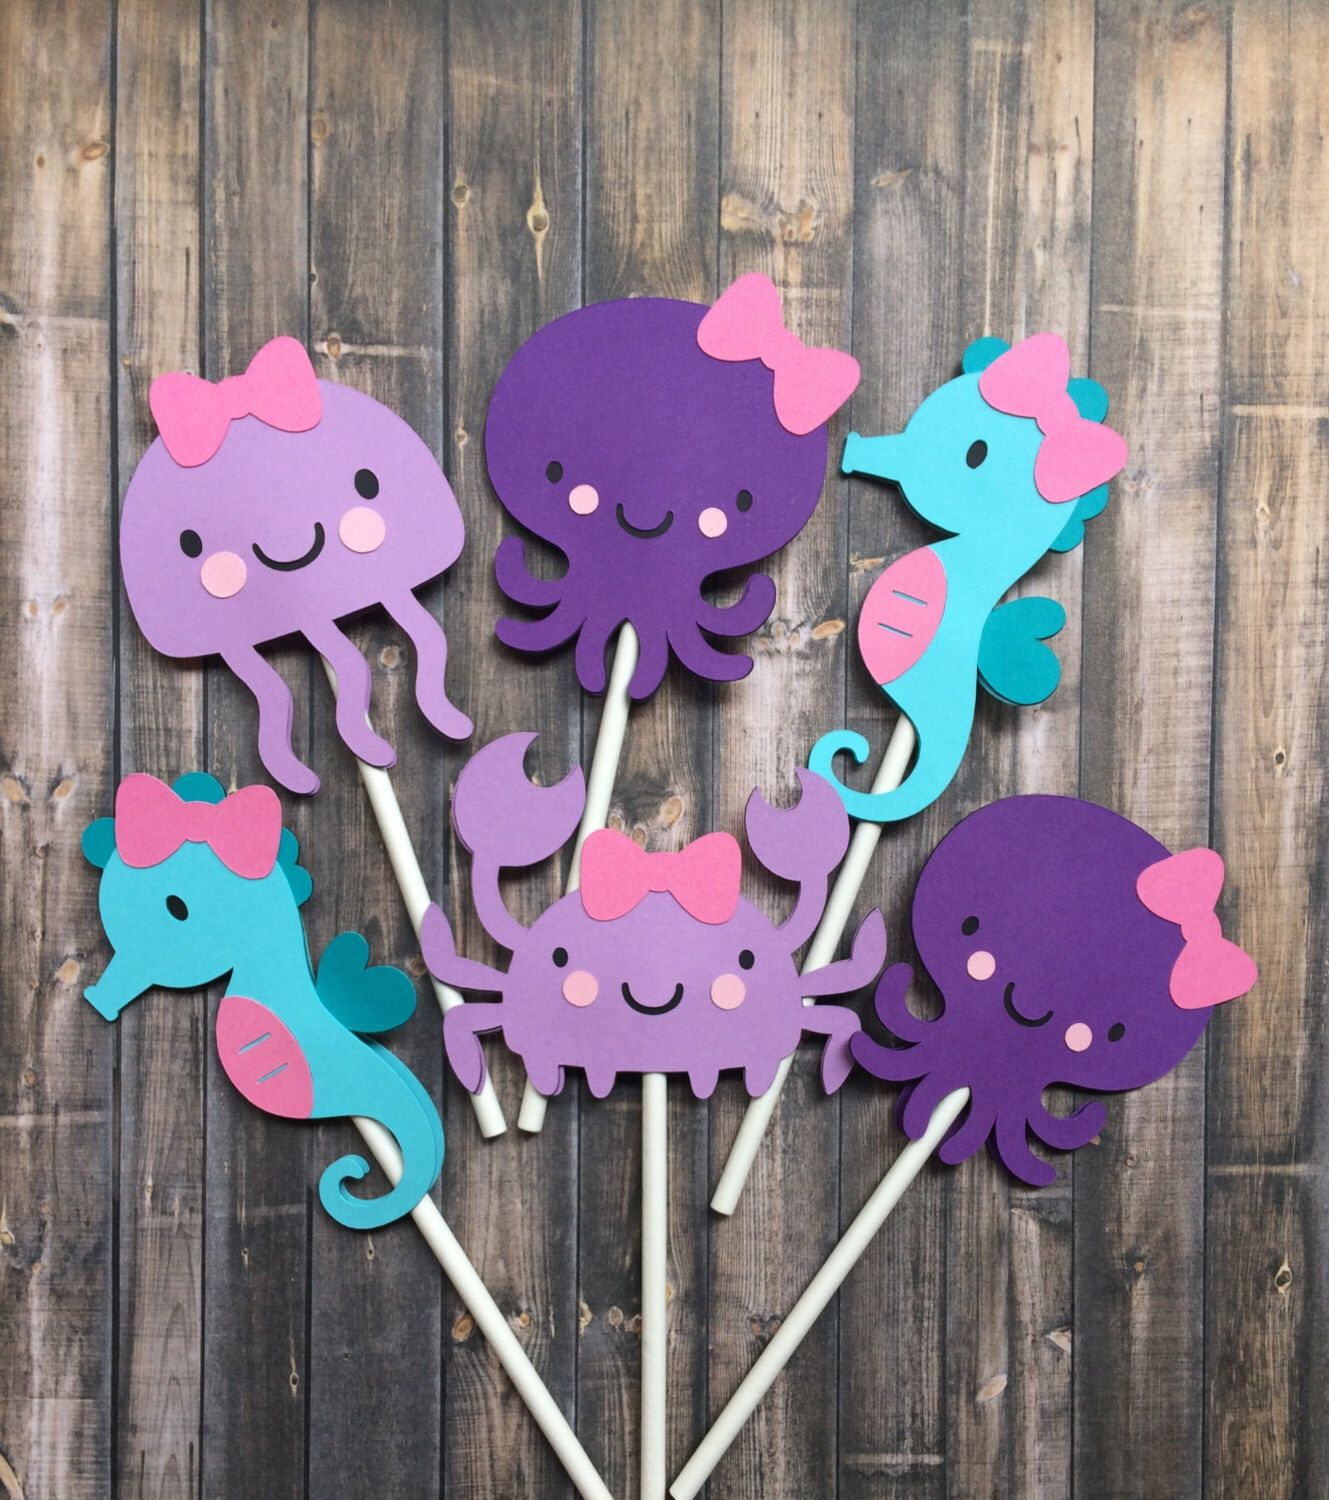 12 Under the sea cupcake toppers girl seahorse octopus jelly fish